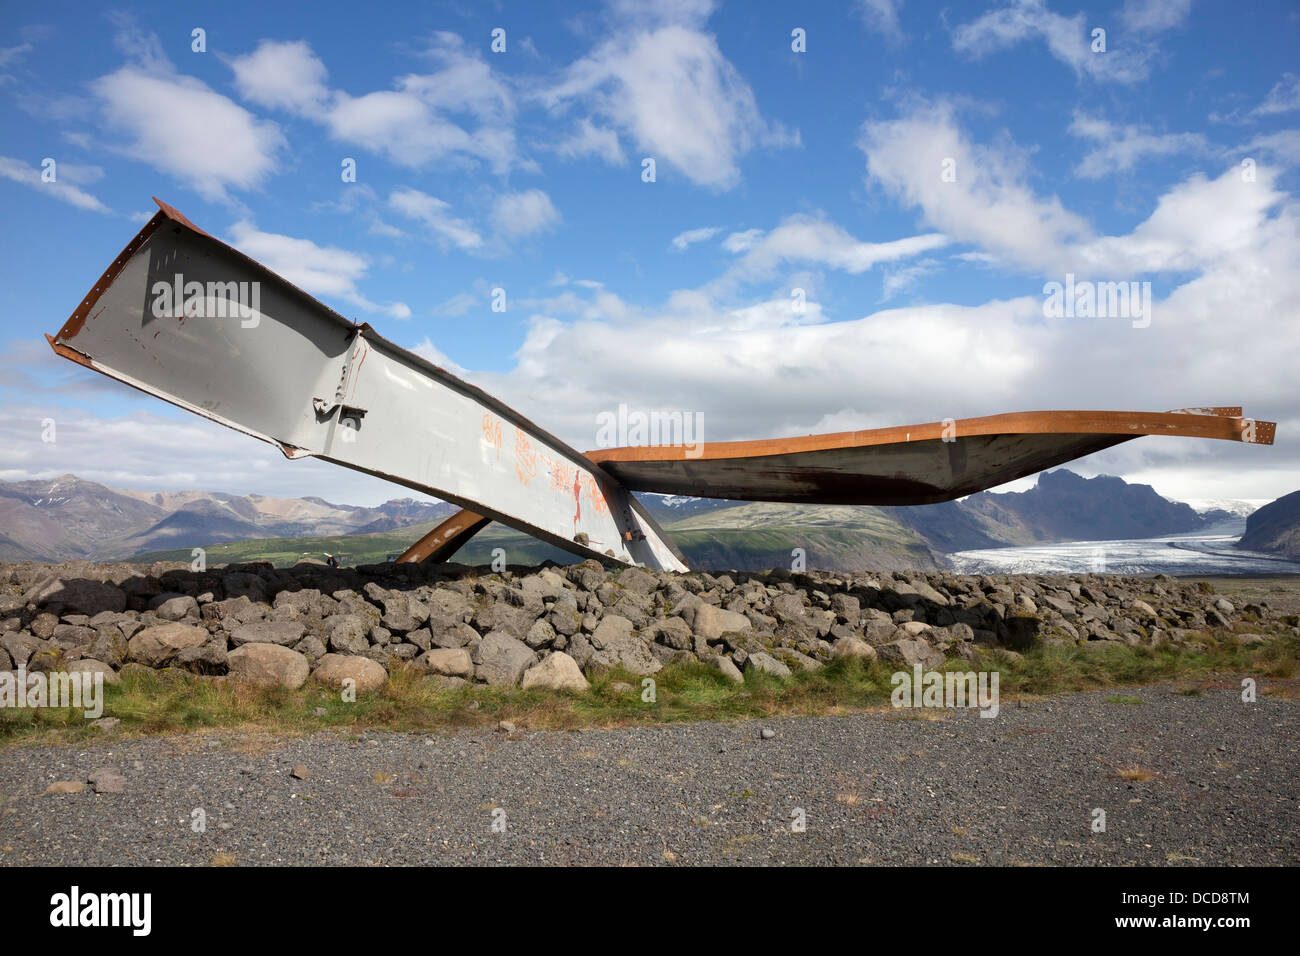 Twisted Metal Girders from the Gigjukvisl Bridge Destroyed by a Flood During a Volcanic Eruption Iceland - Stock Image